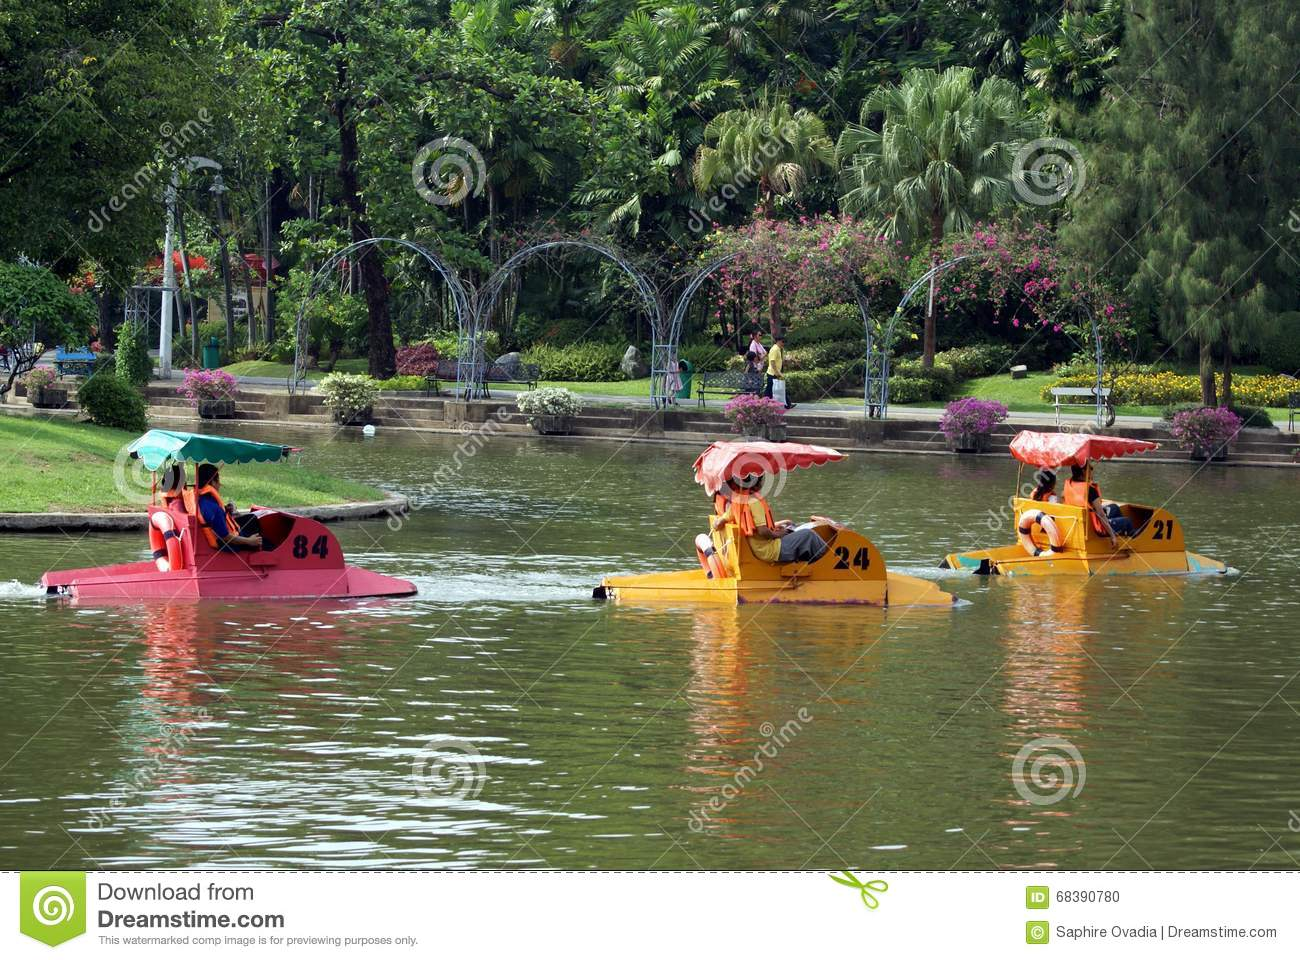 People pedalling boats on a lake in Dusit Zoo, Bangkok, Thailand